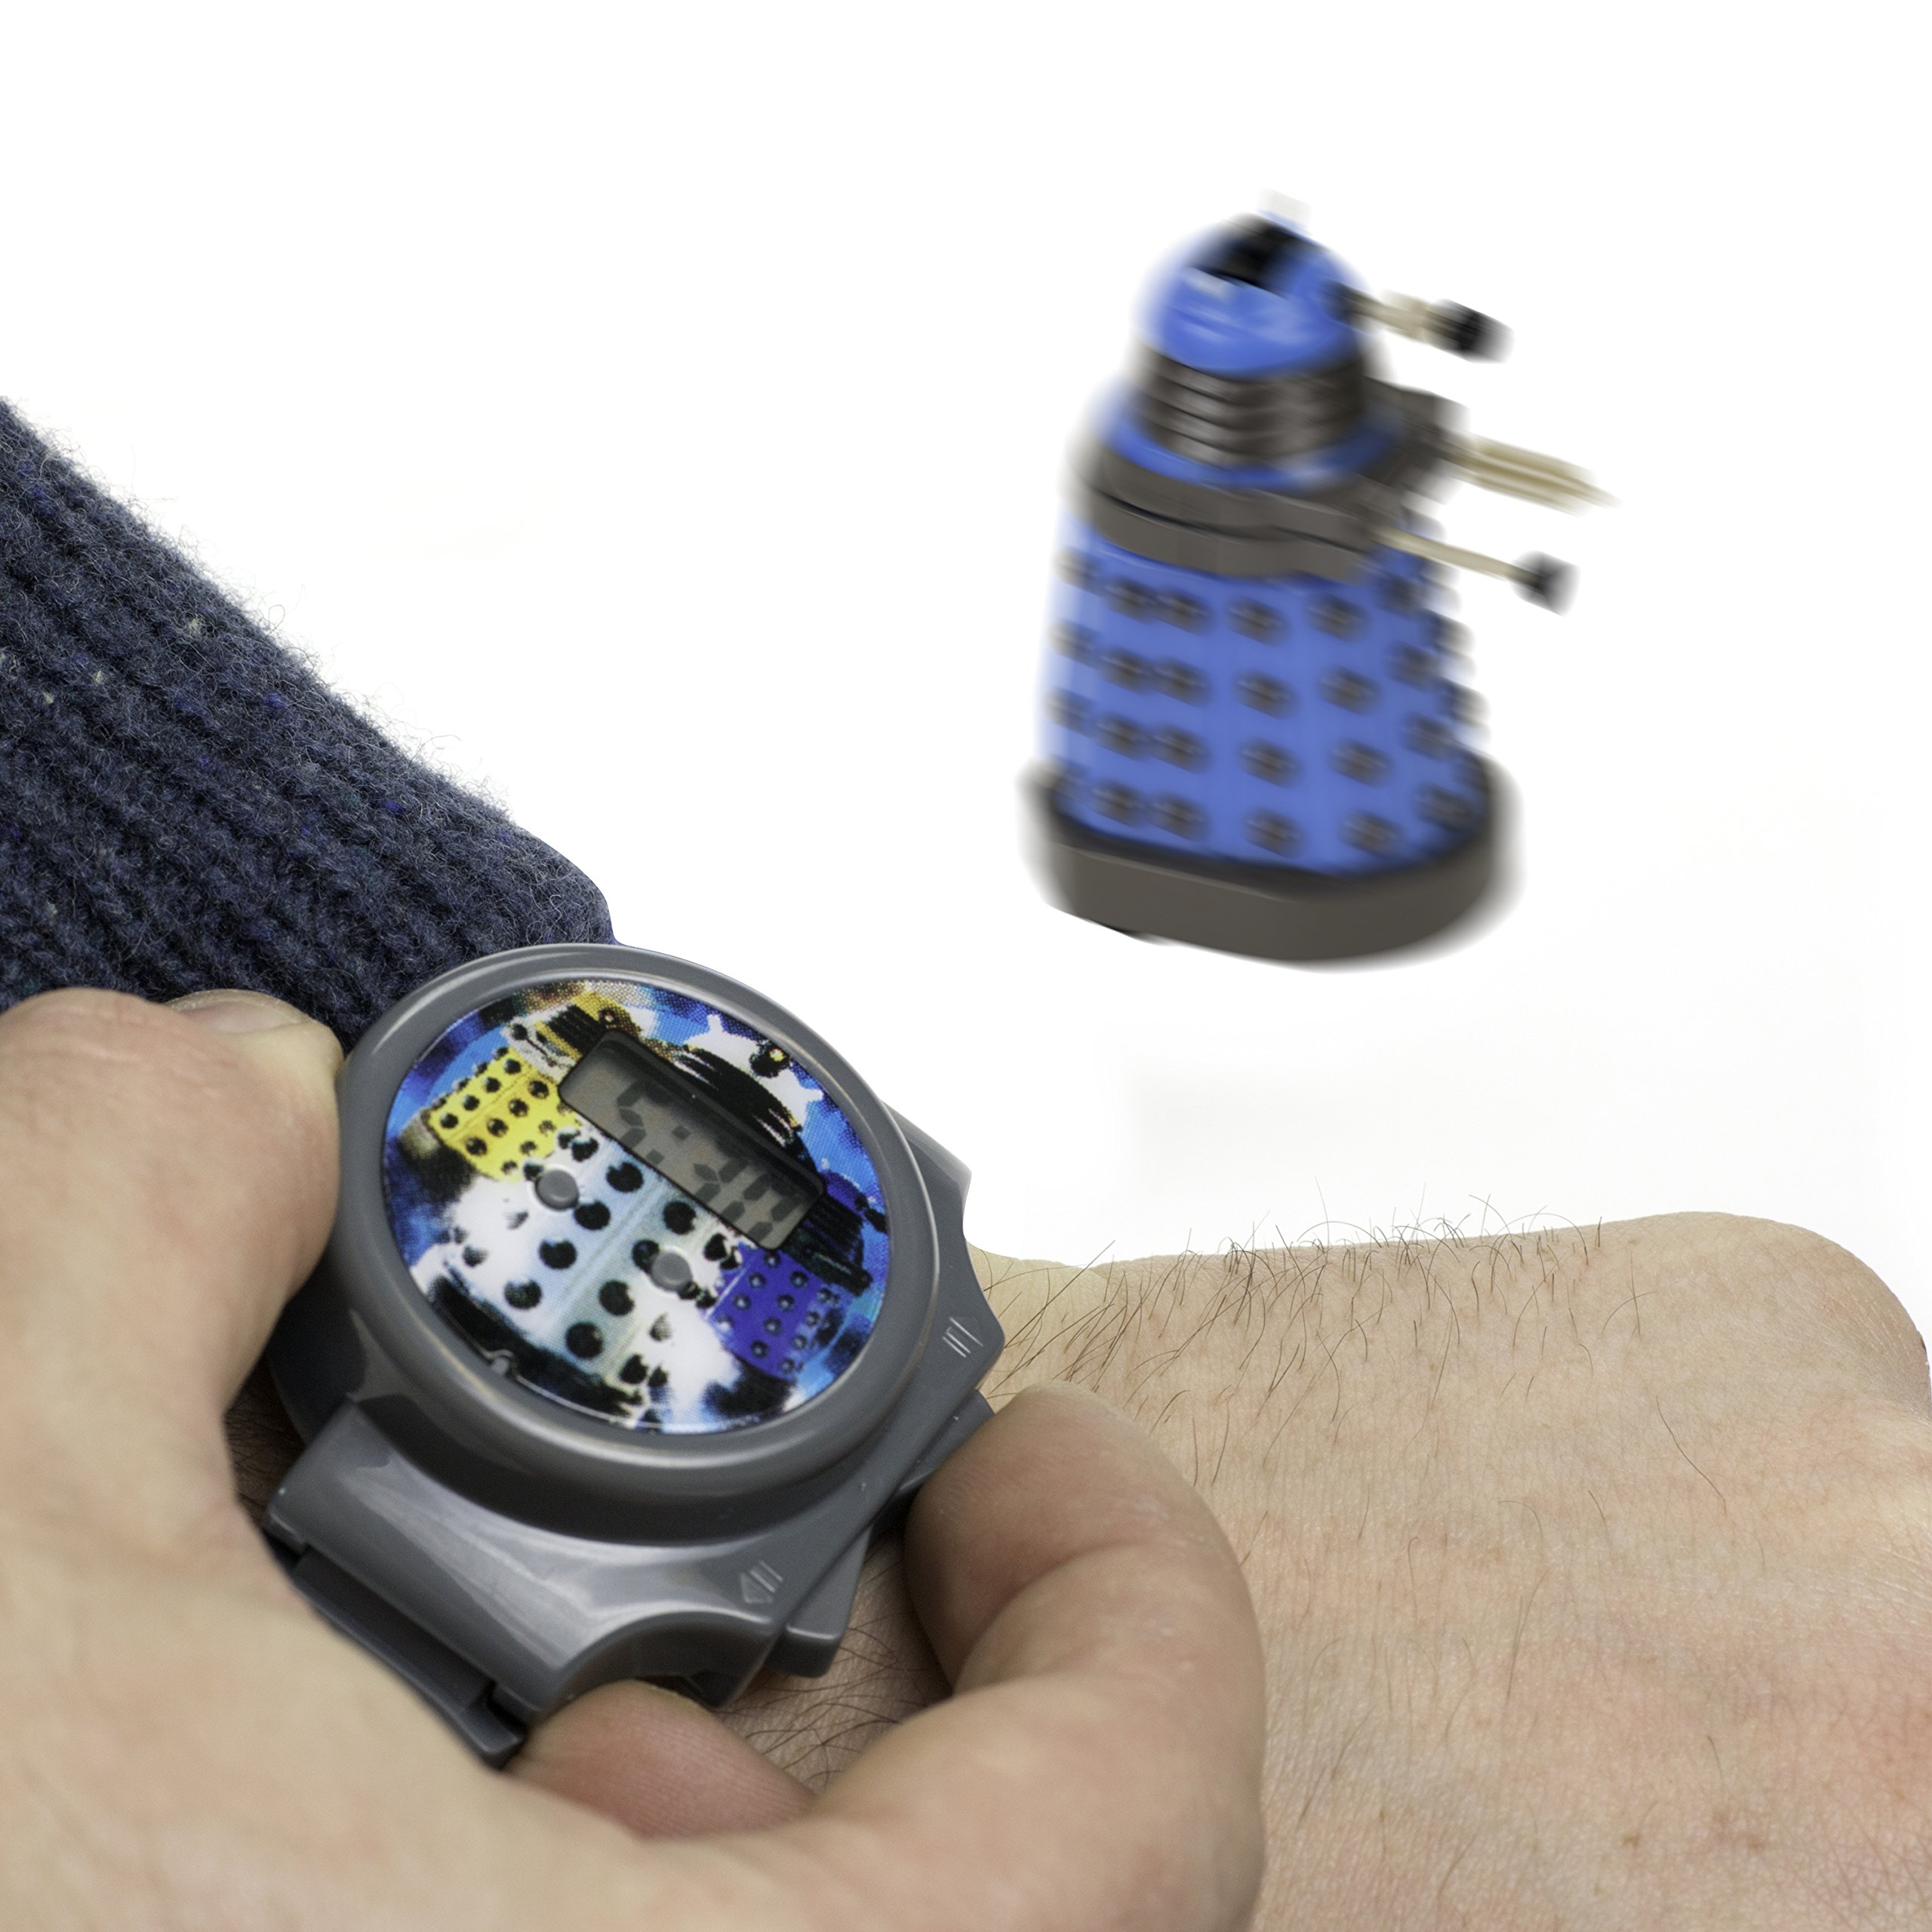 Doctor Who Digital Watch - Dalek Whizz Watch With Mini Remote Controlled Figure and Keychain